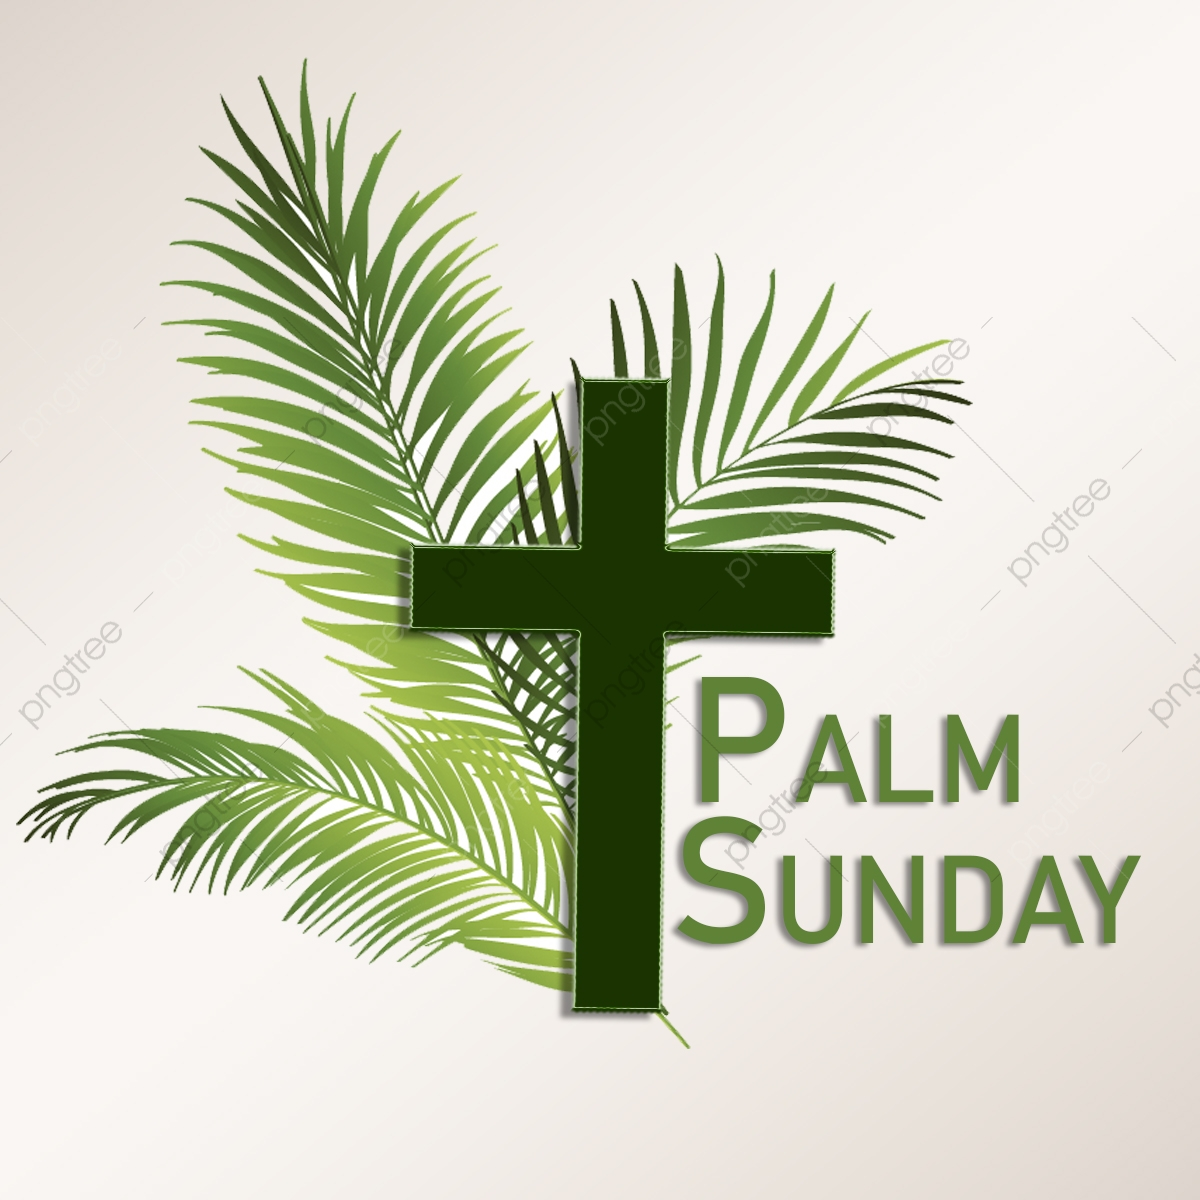 Palm Sunday With Leaves And Cross Background, Palm, Sunday.